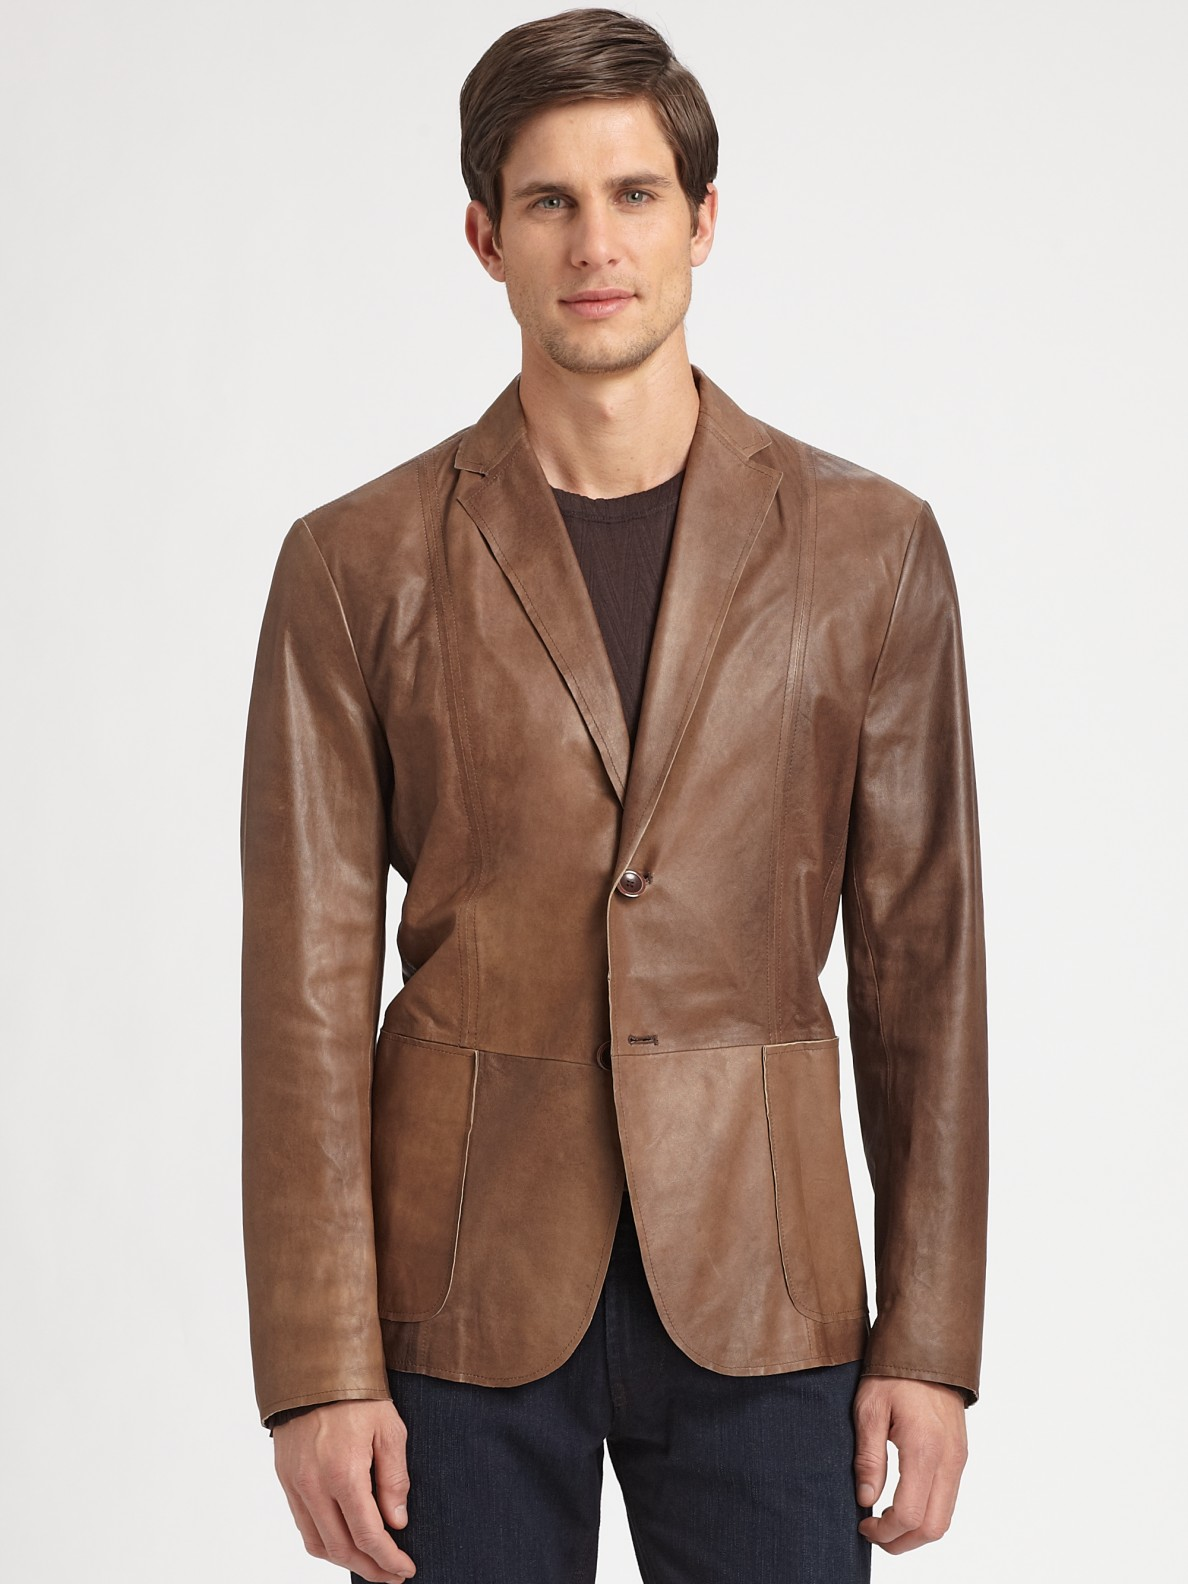 Lyst - Armani Leather Blazer In Brown For Men